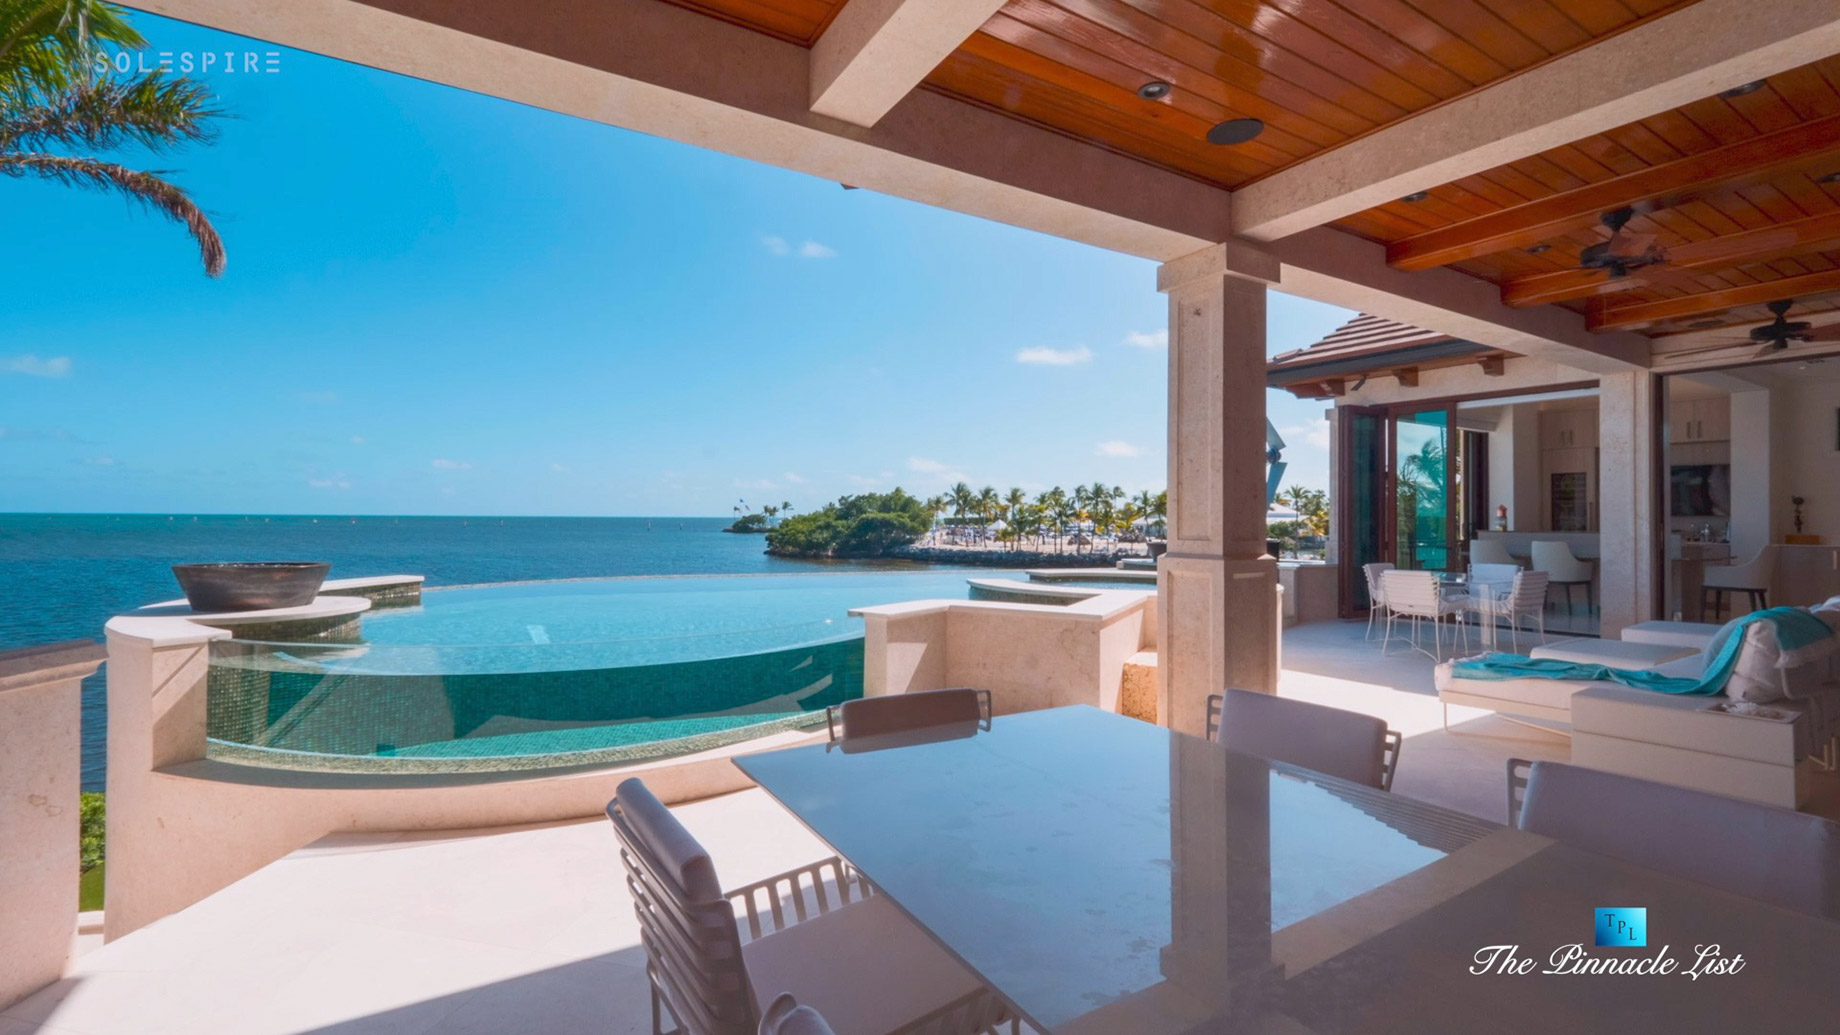 Poolside Views - Ocean Reef Estate - 103 Andros Rd, Key Largo, Florida, USA - Eric Woodward - Story